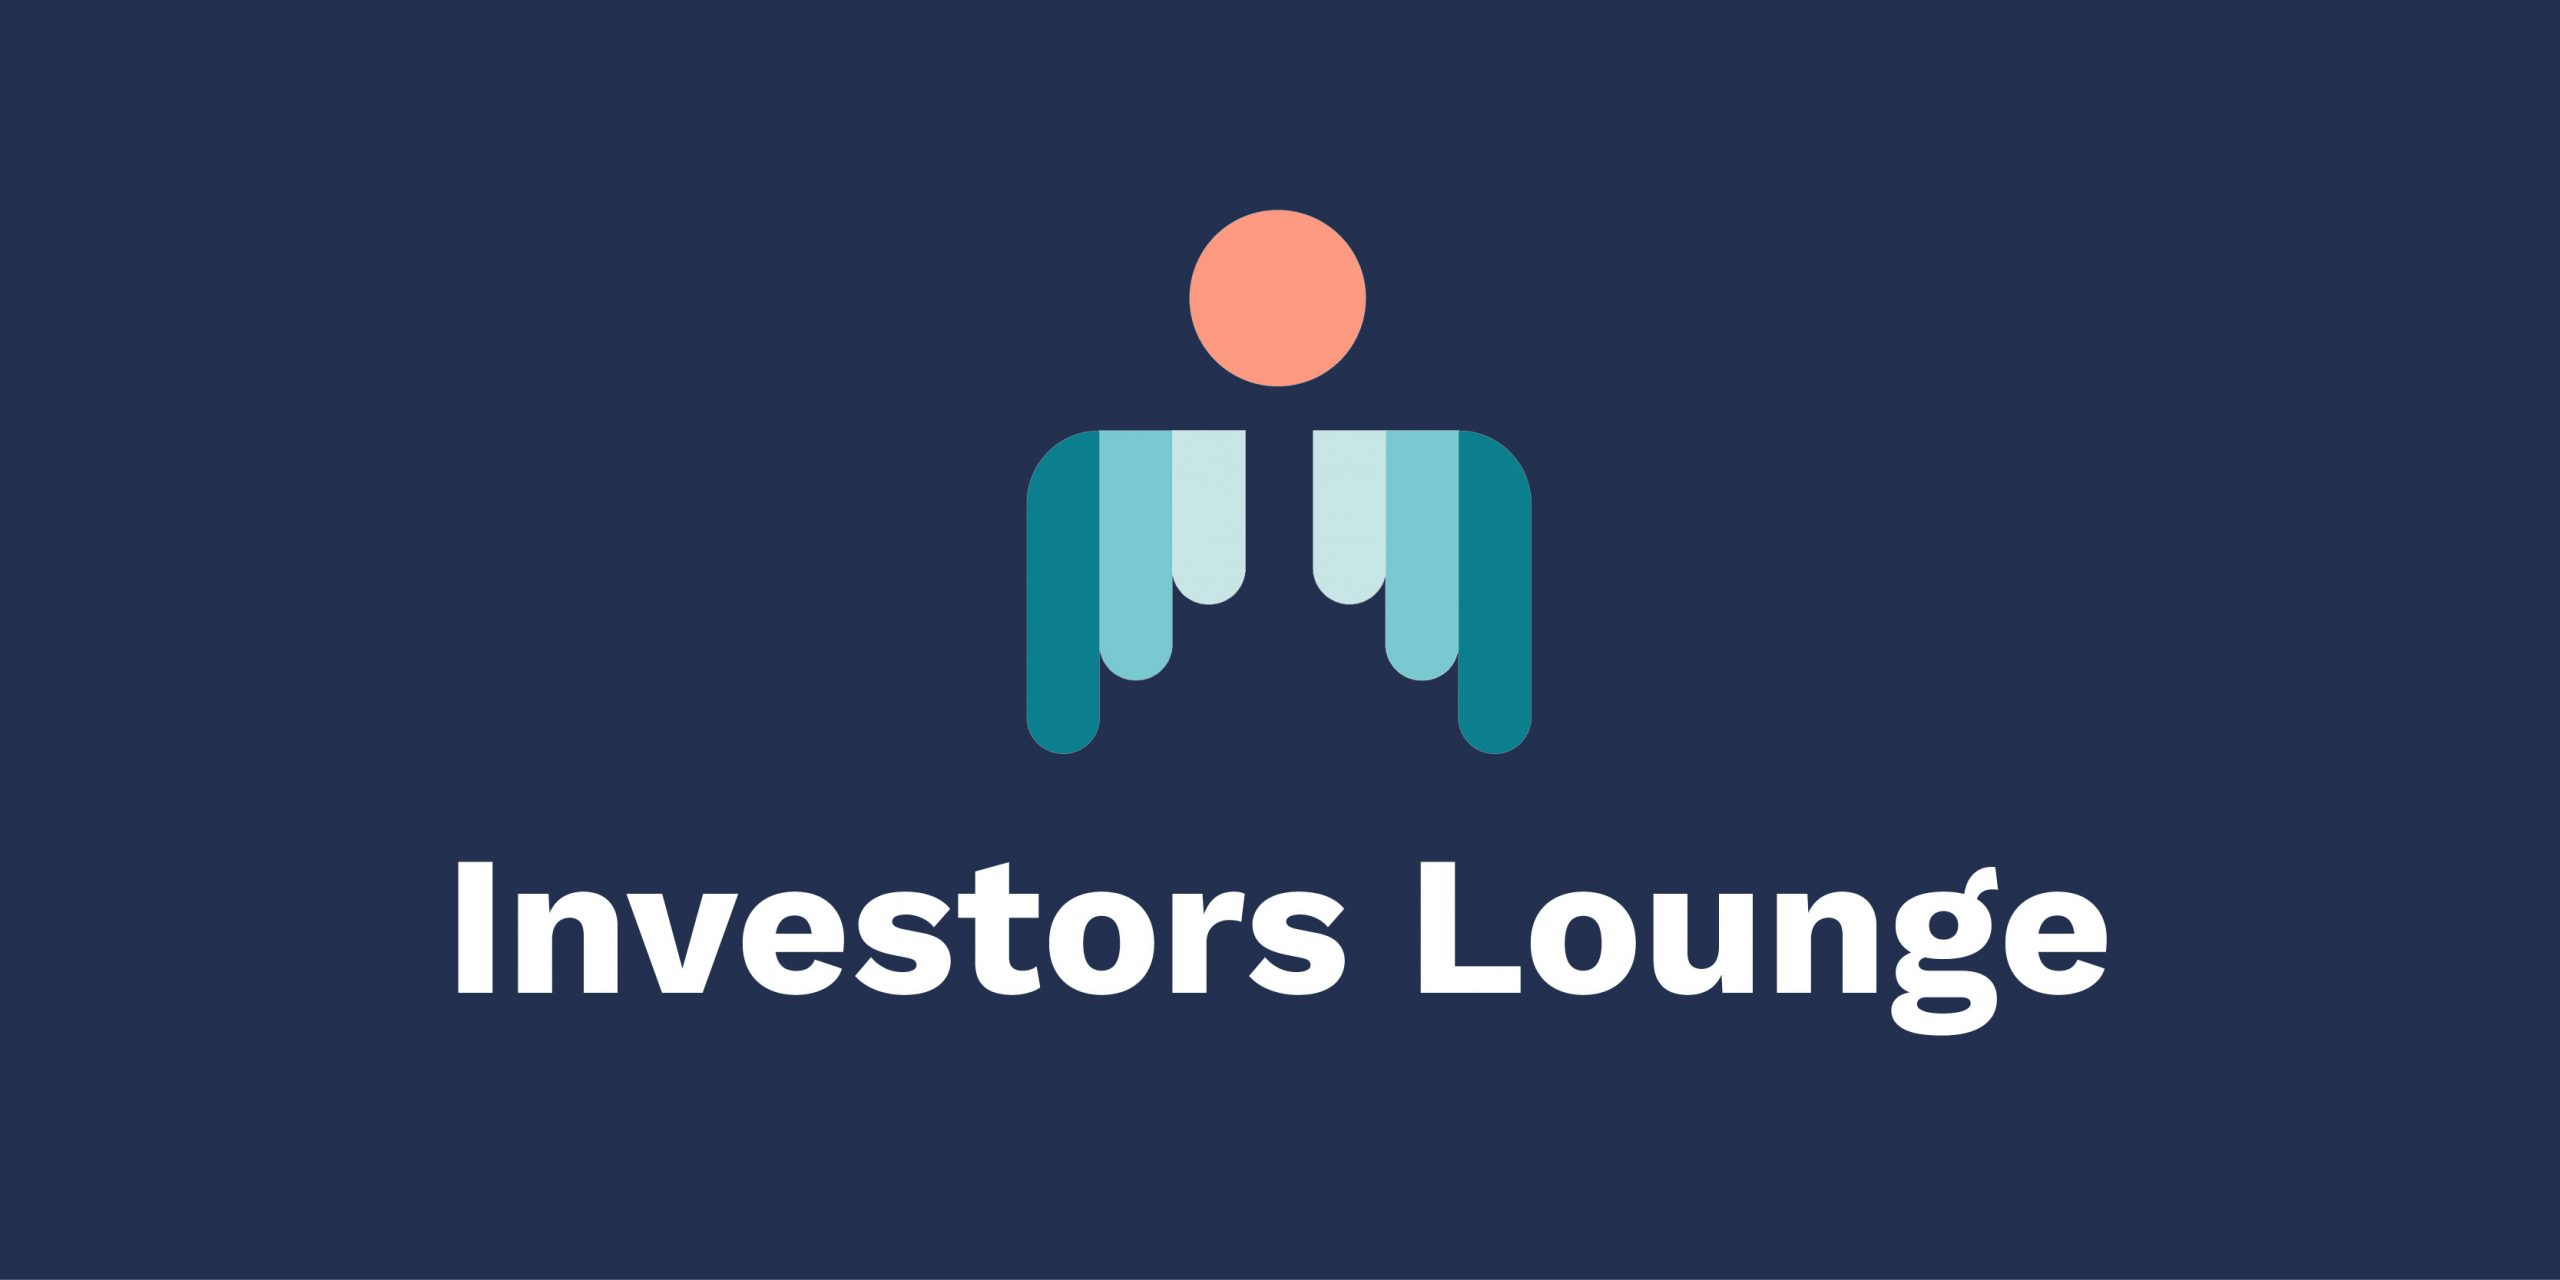 aaia-investors lounge-business angel-monthly